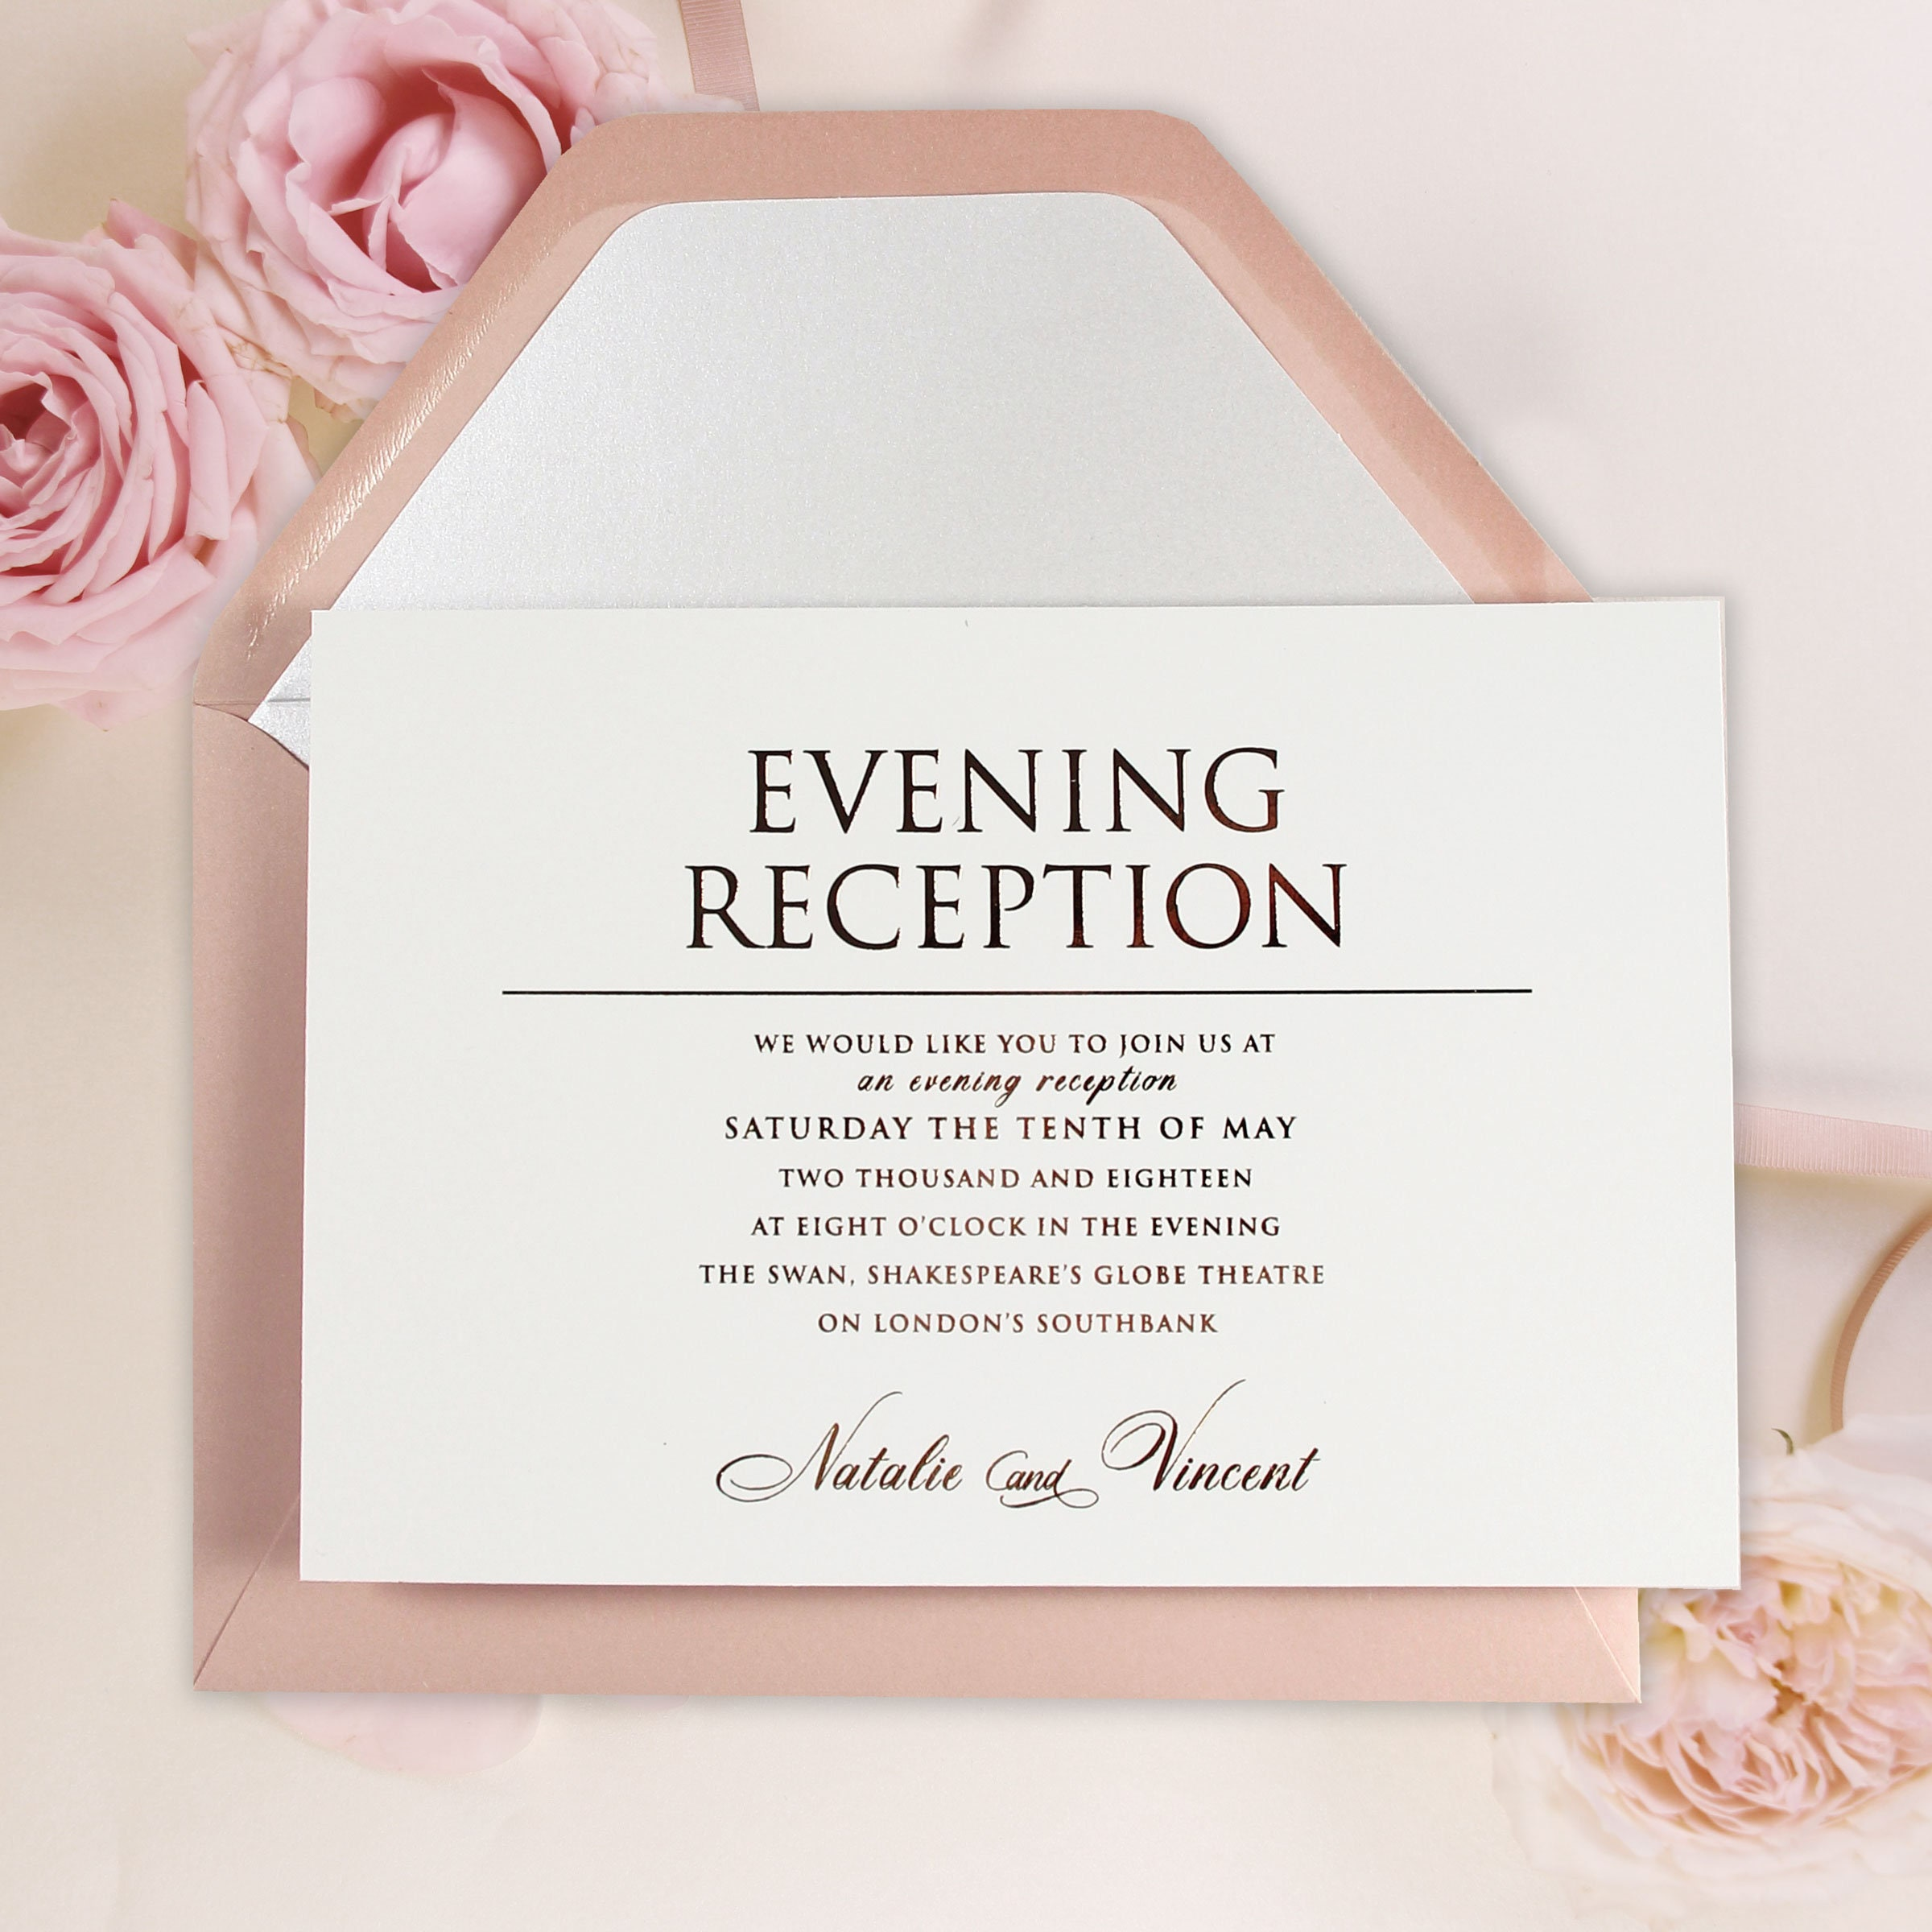 Rose Gold Wedding Evening Invitation Simple Rose Pink with